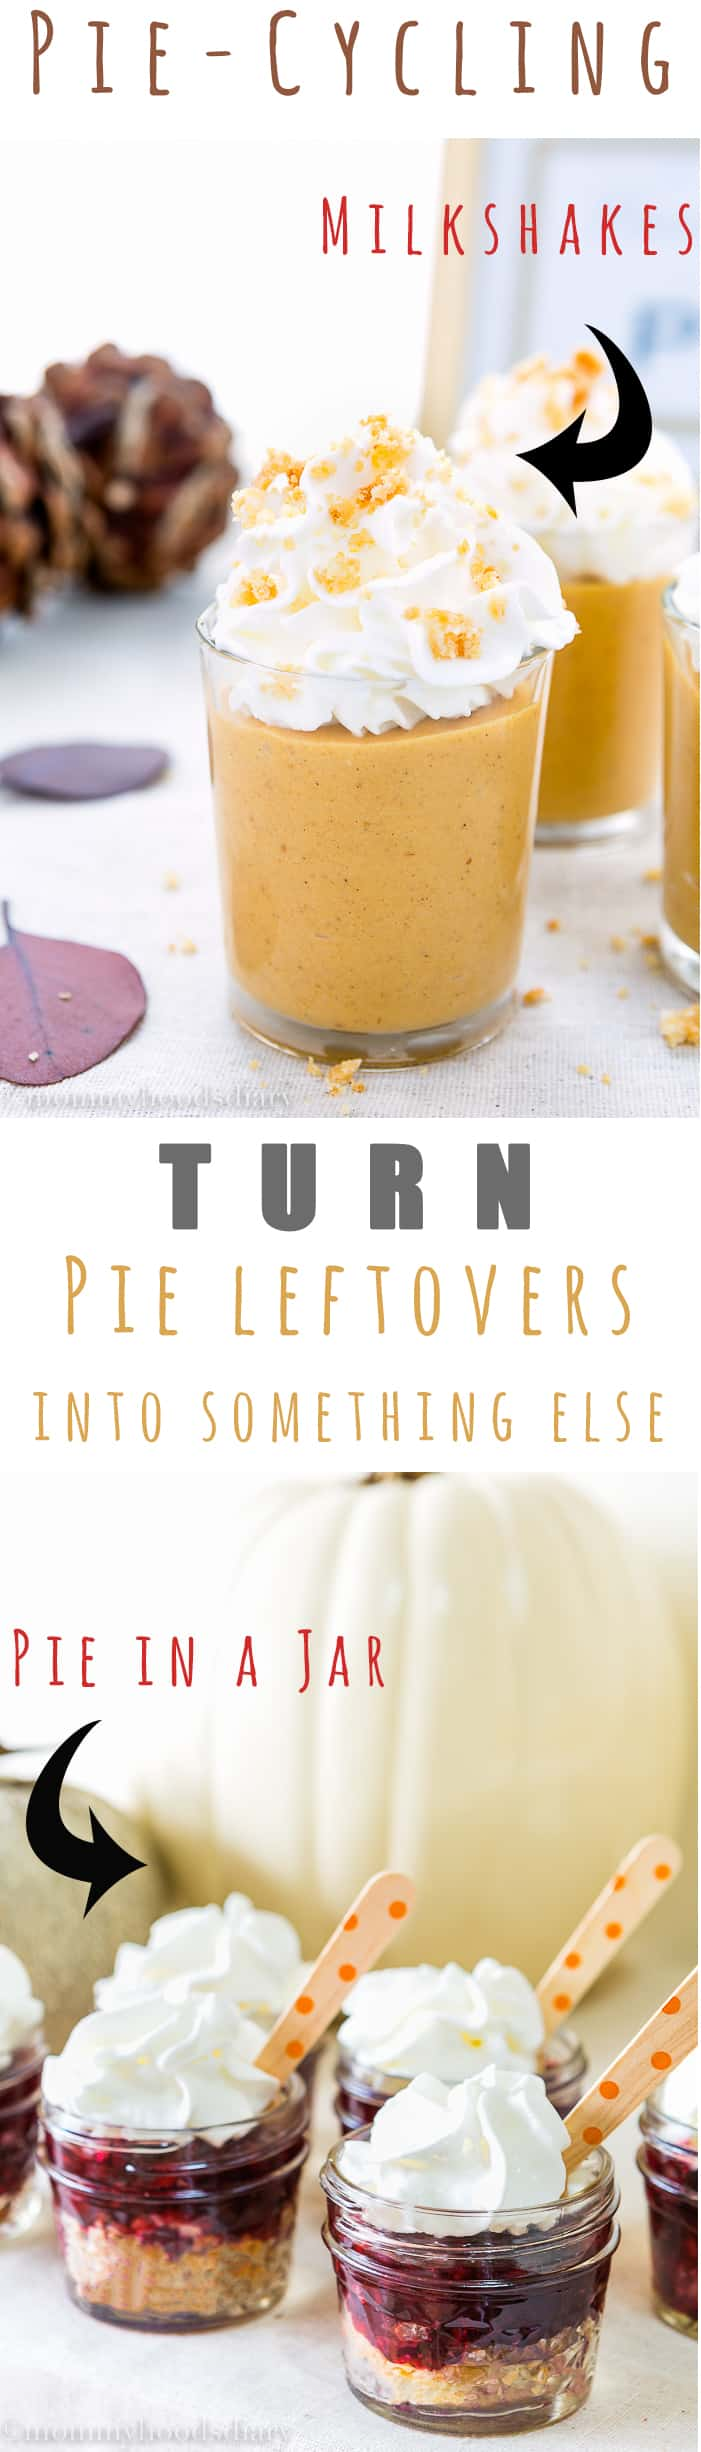 Pie-Cycling | Mommyhood's Diary